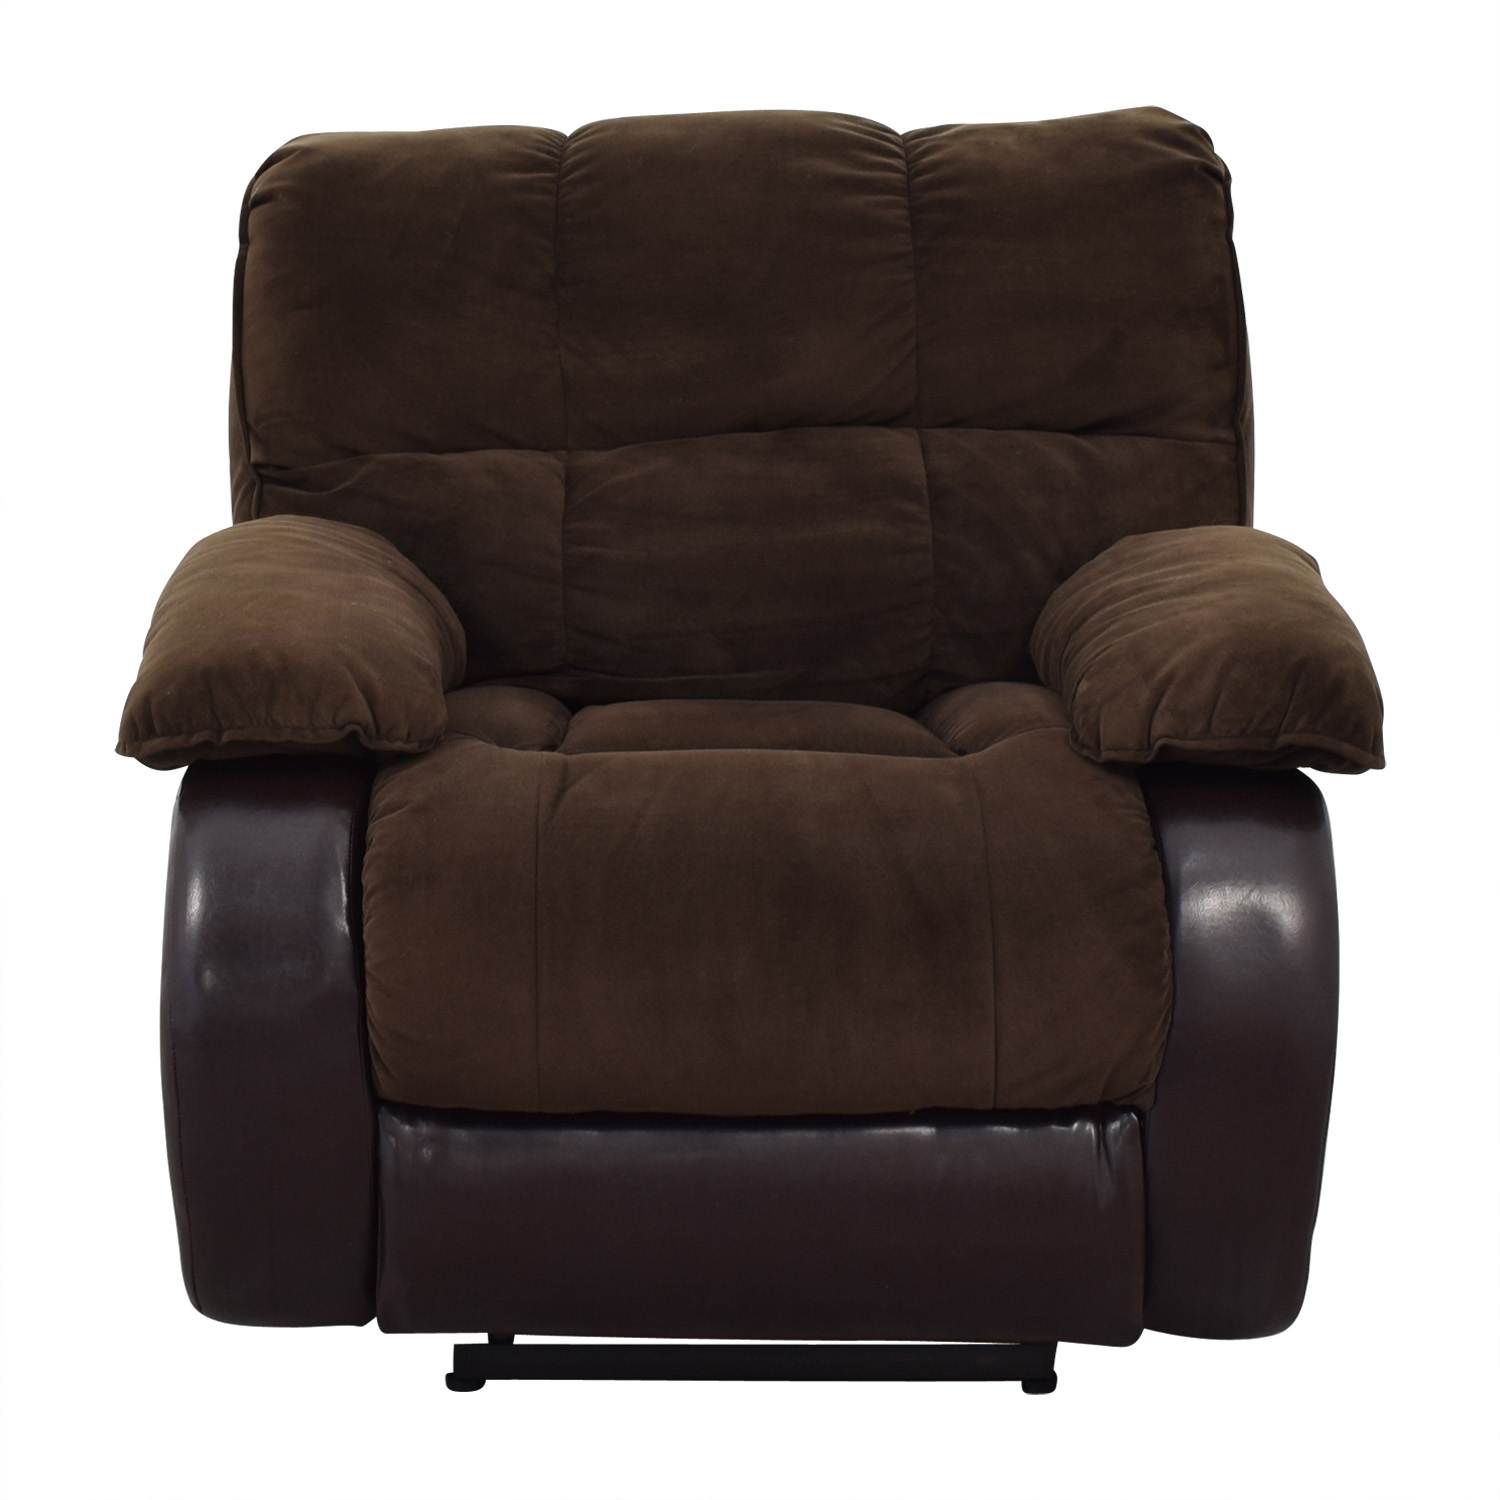 Raymour & Flanigan Recliner sale